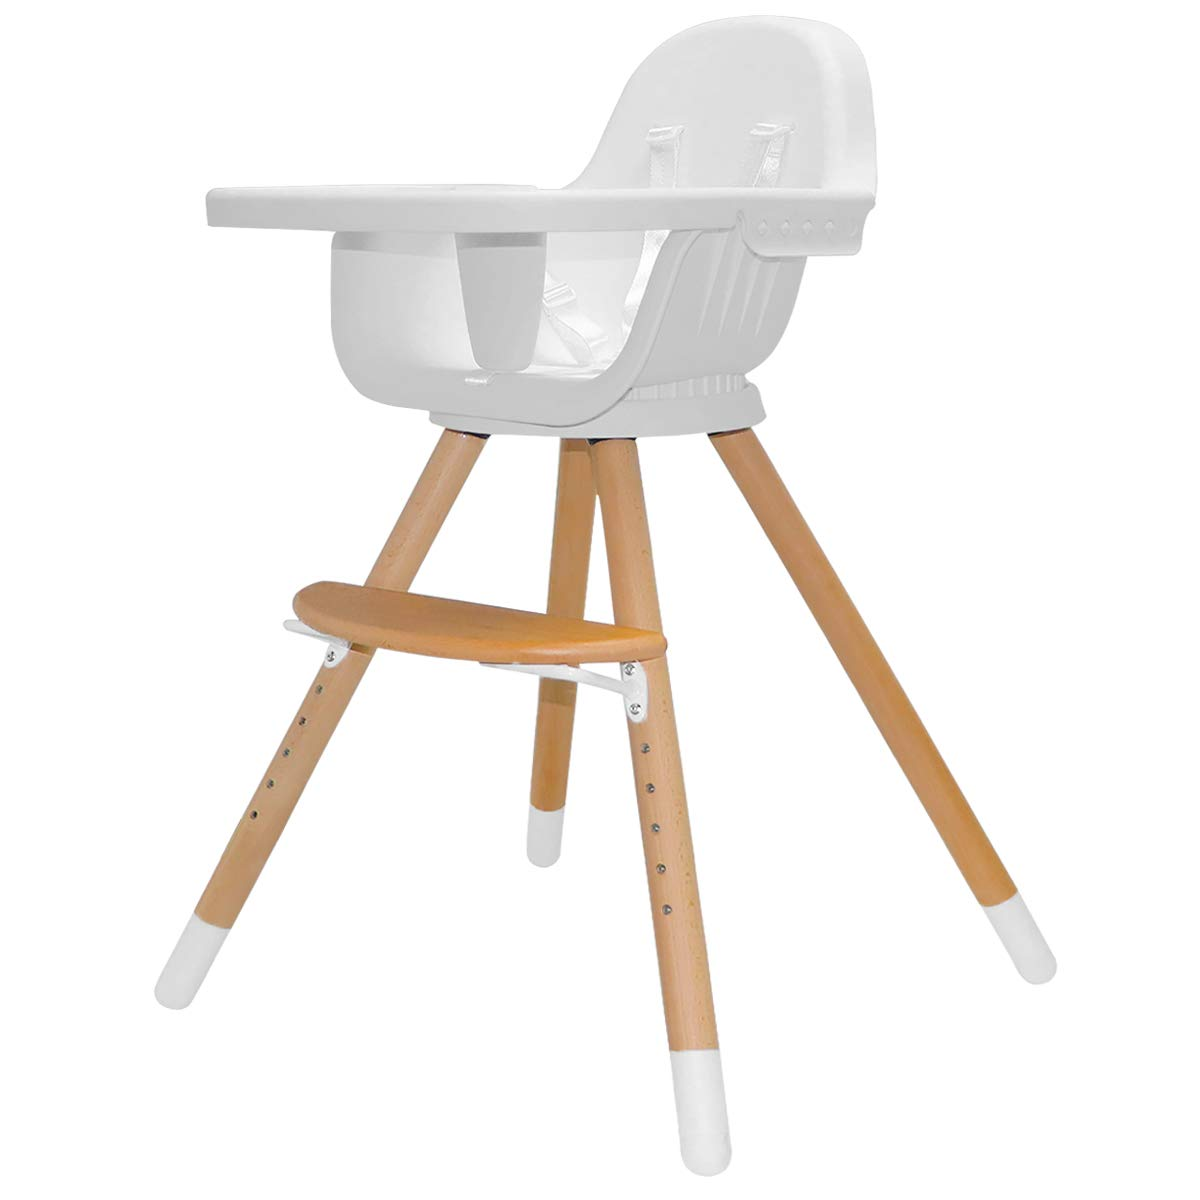 Fabulous Amazon Com Asunflower Wooden High Chair For Baby Swivel Gmtry Best Dining Table And Chair Ideas Images Gmtryco